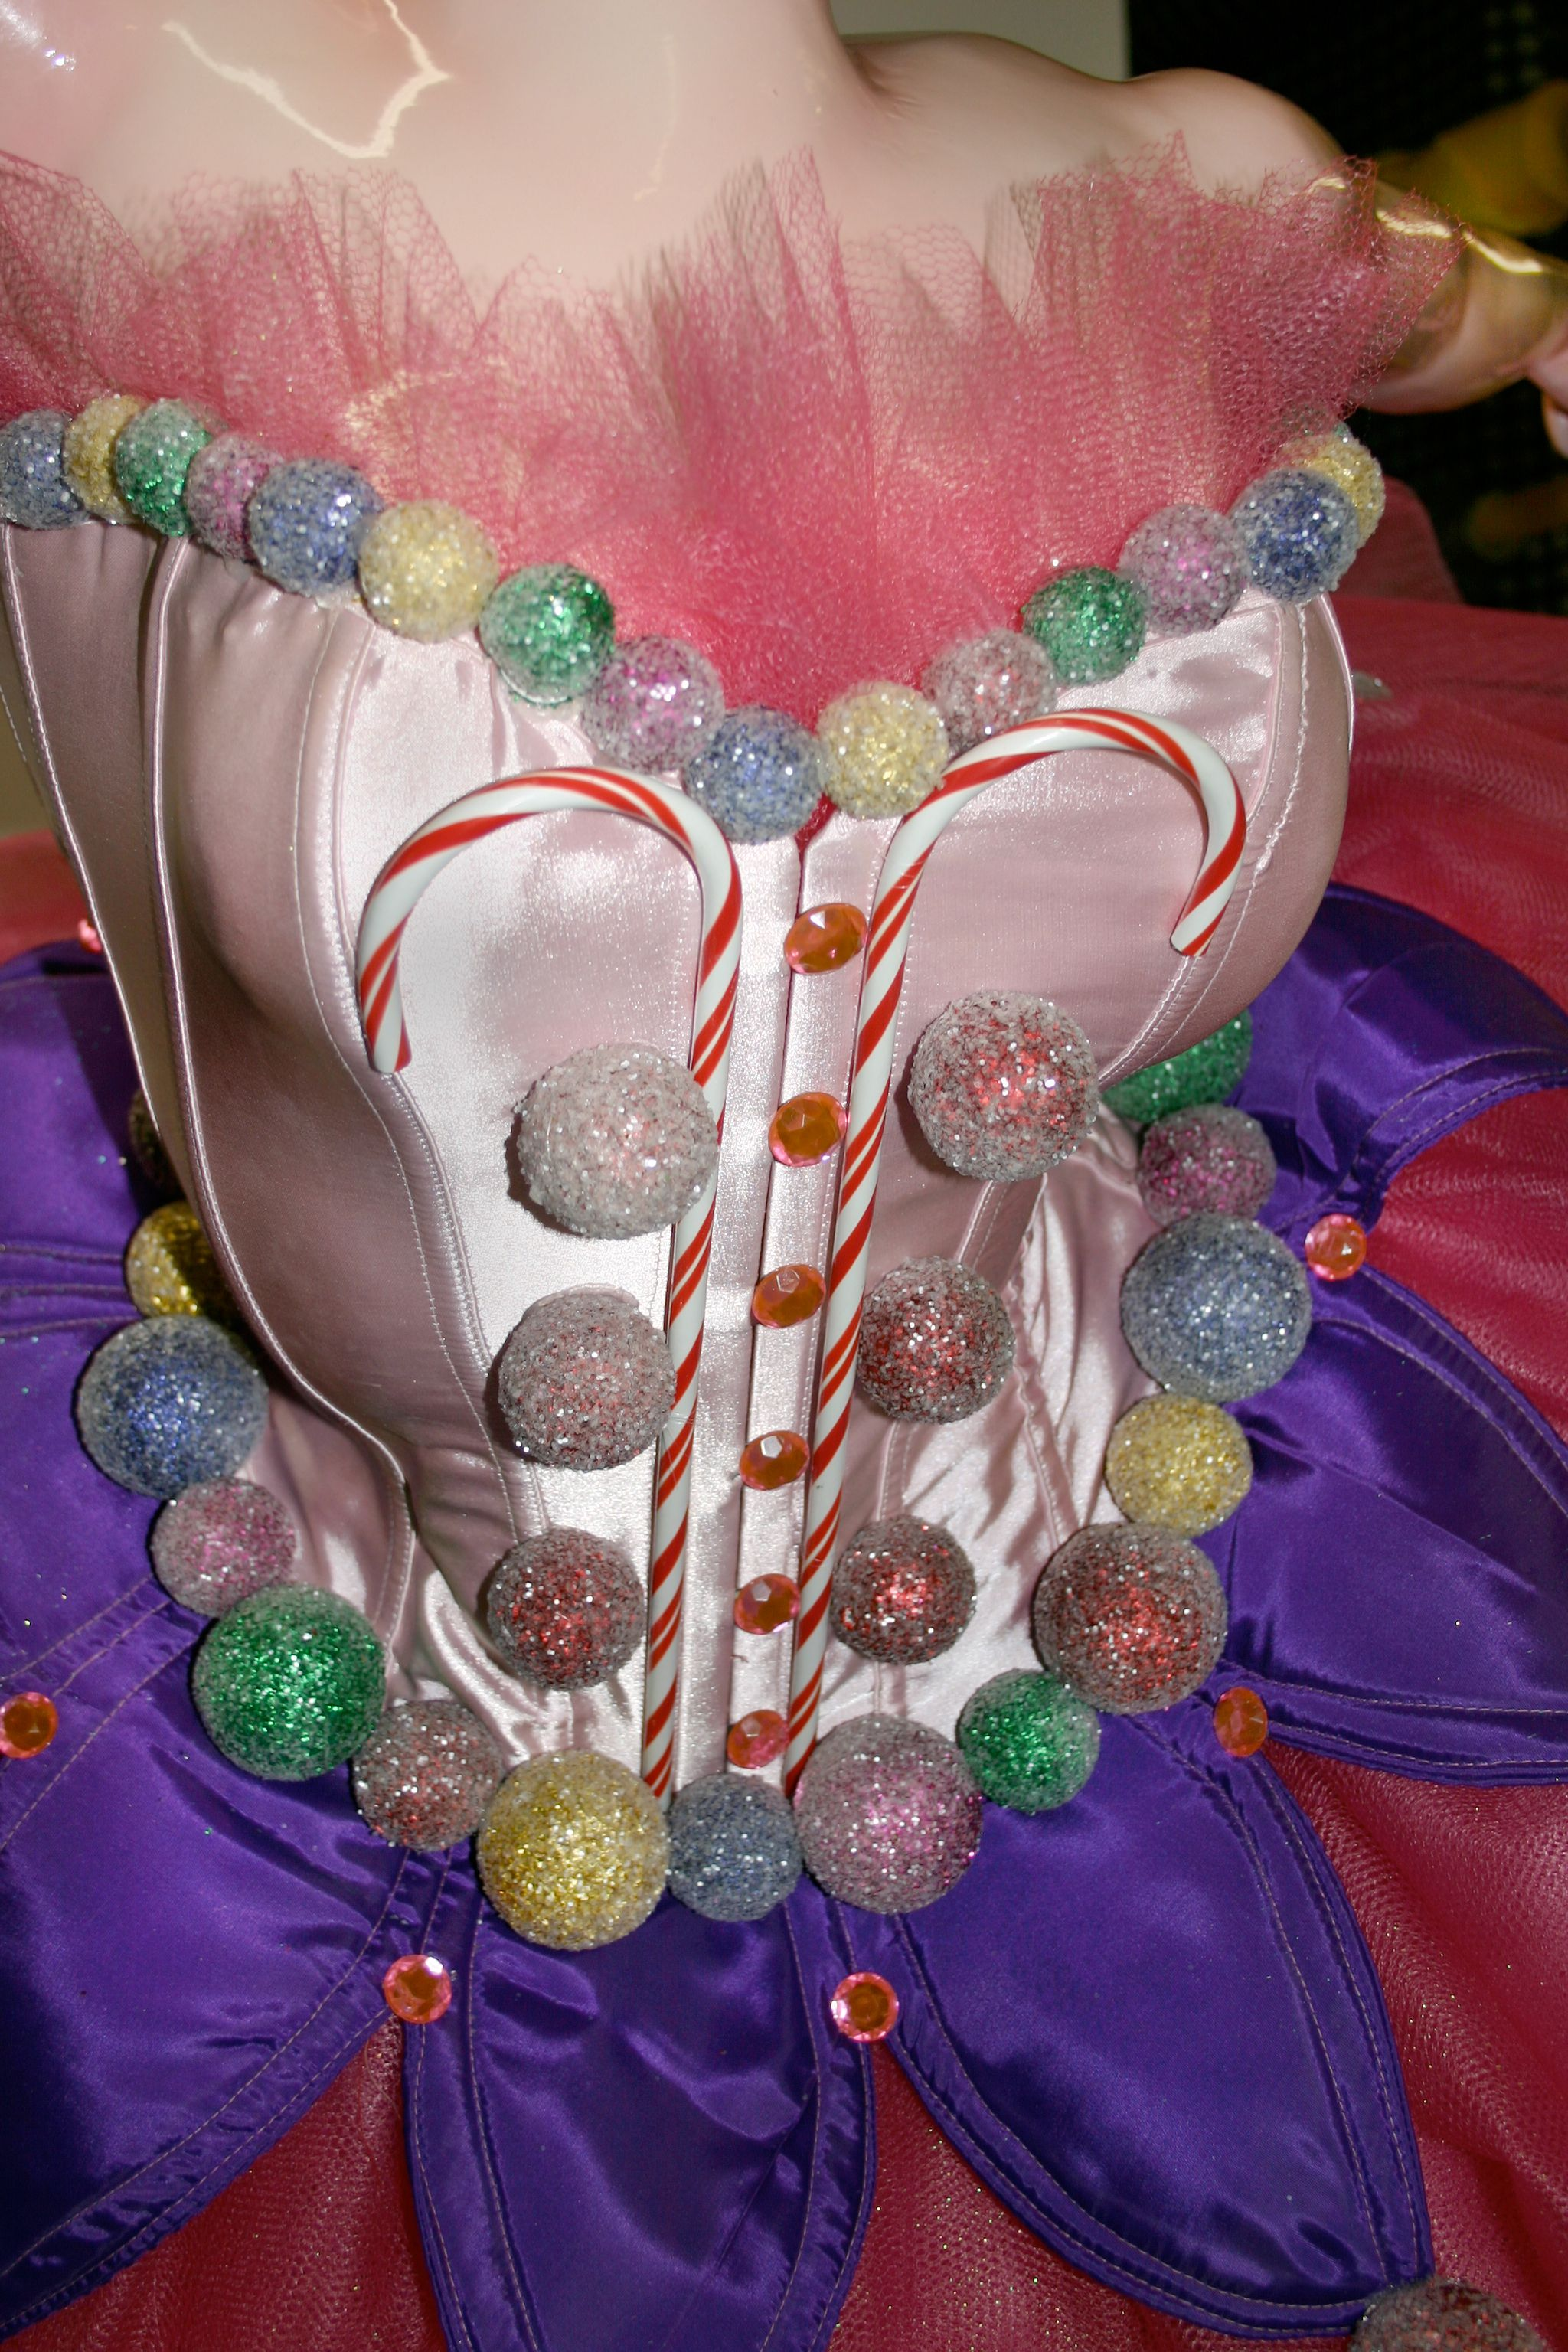 Torso detail of a Sugar Plum Fairy who will be featured in a Nutcracker themed holiday & Torso detail of a Sugar Plum Fairy who will be featured in a ...